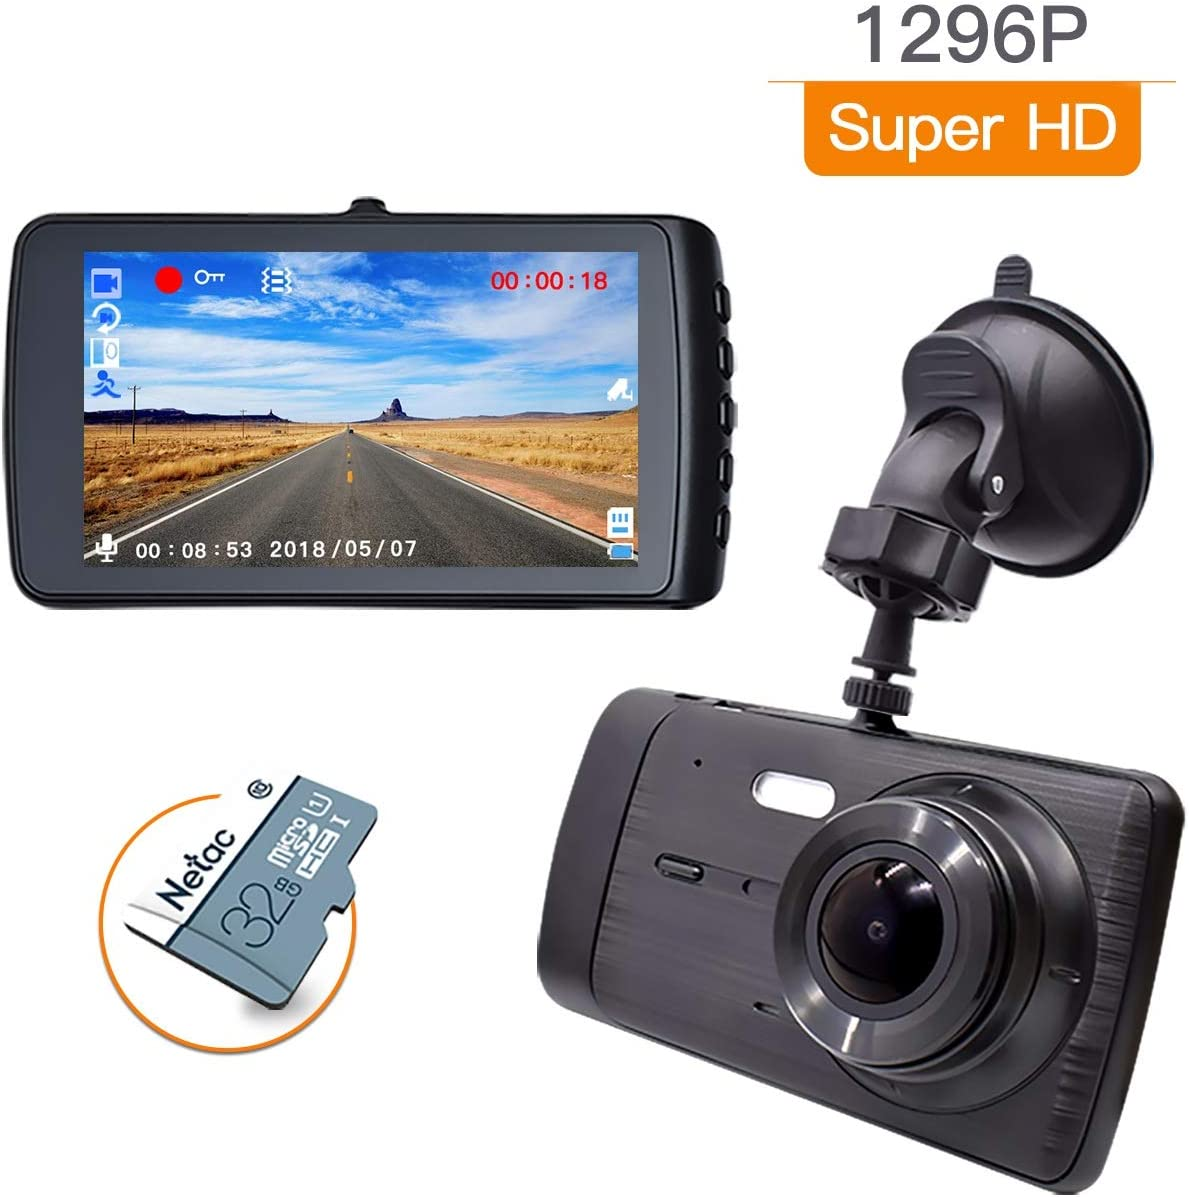 Dash Cam 1296P Dashboard Camera 4 LCD Screen Full HD Car DVR Camera 170 Wide Angle, G-Sensor, WDR, Loop Recording, Parking Monitor, Motion Detection 32GB Card Includin